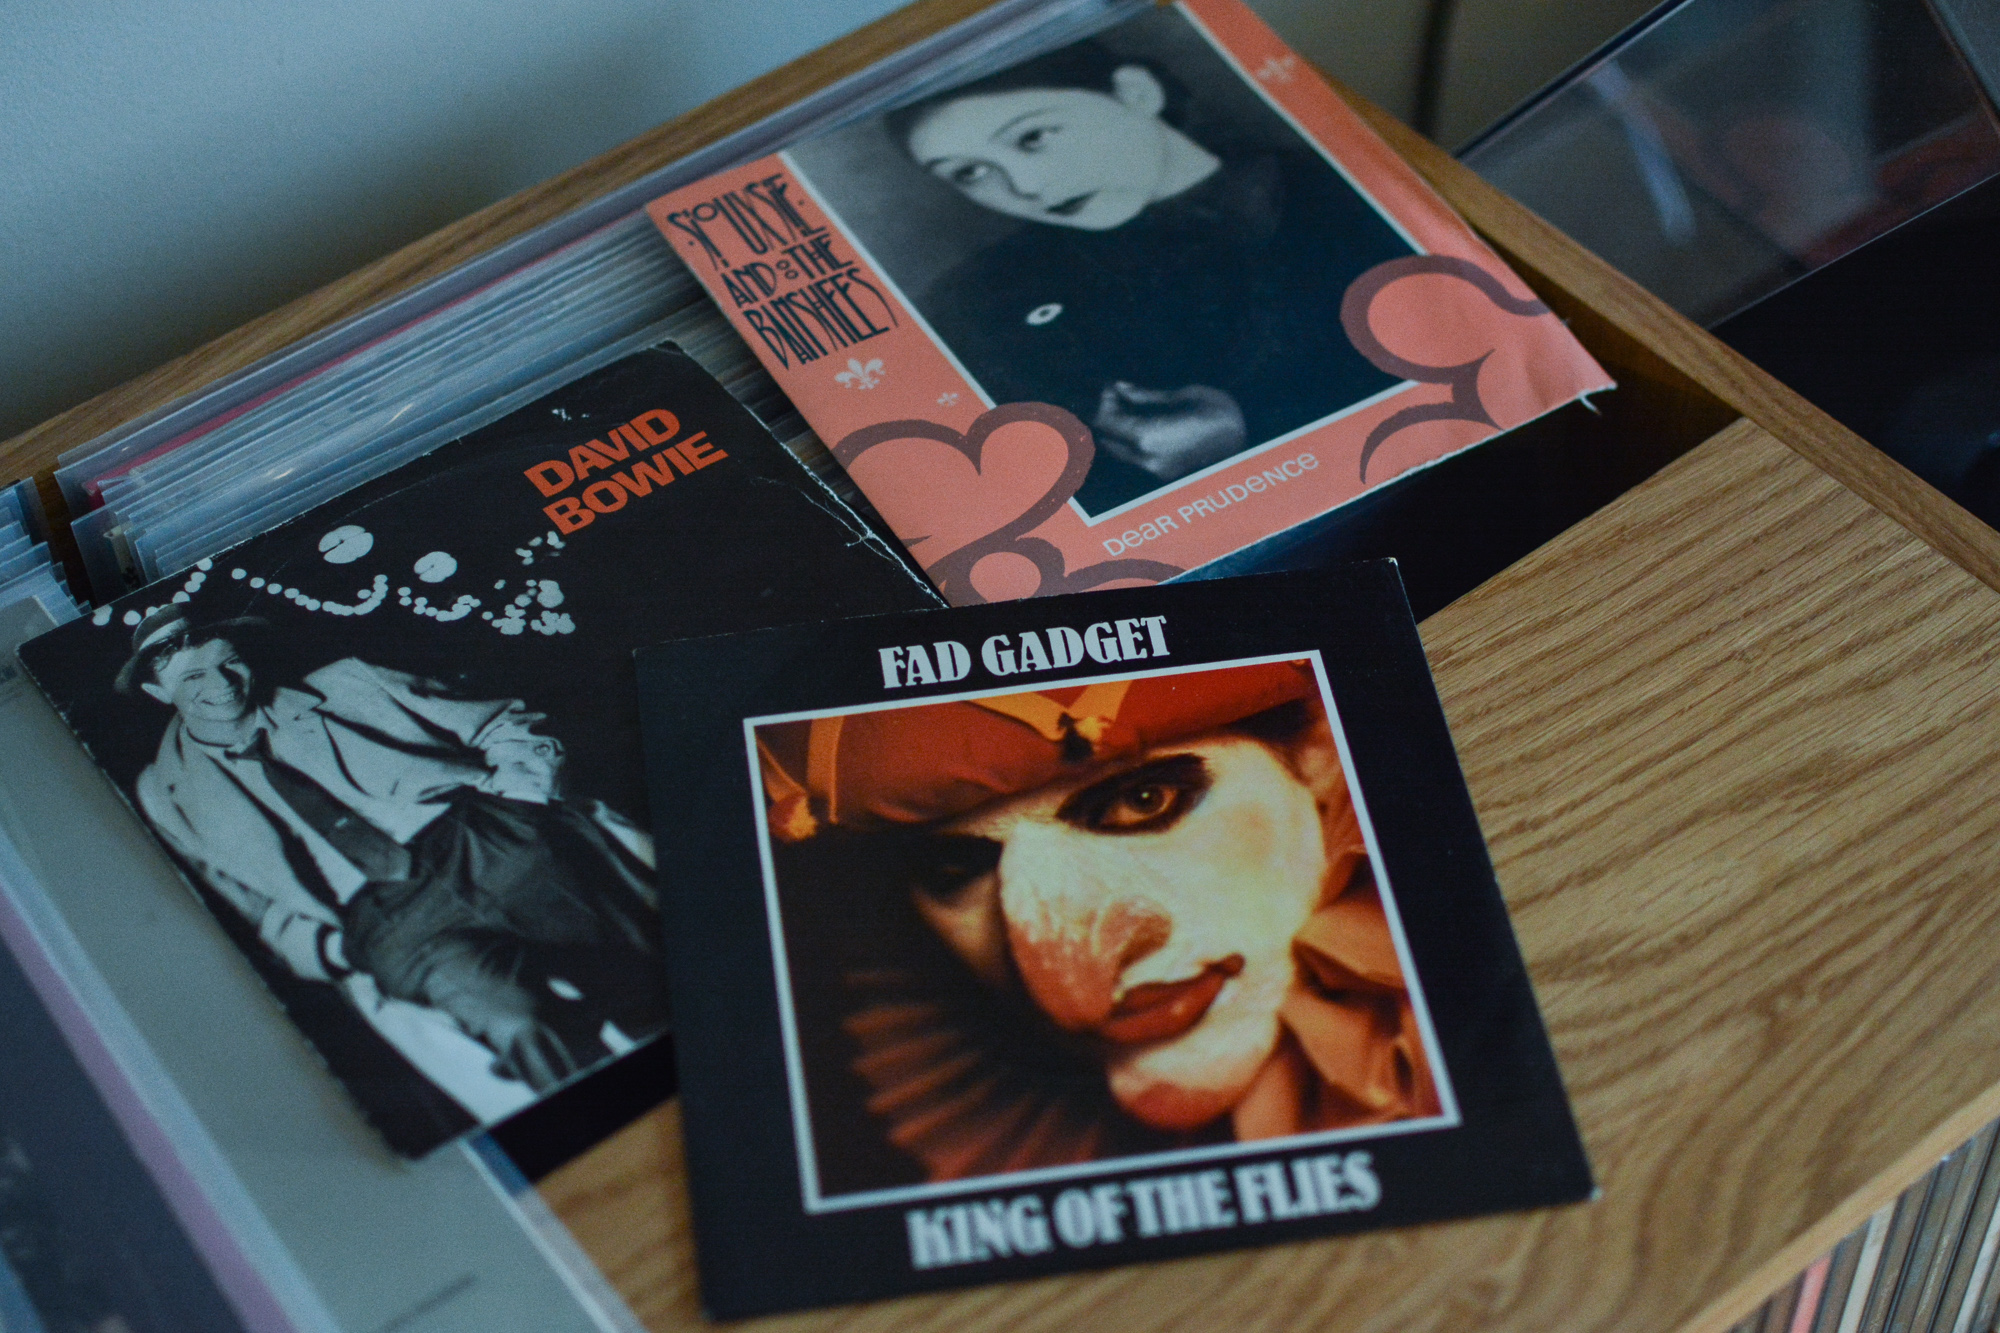 Fad Gadget, David Bowie, Siouxsie and the Banshees